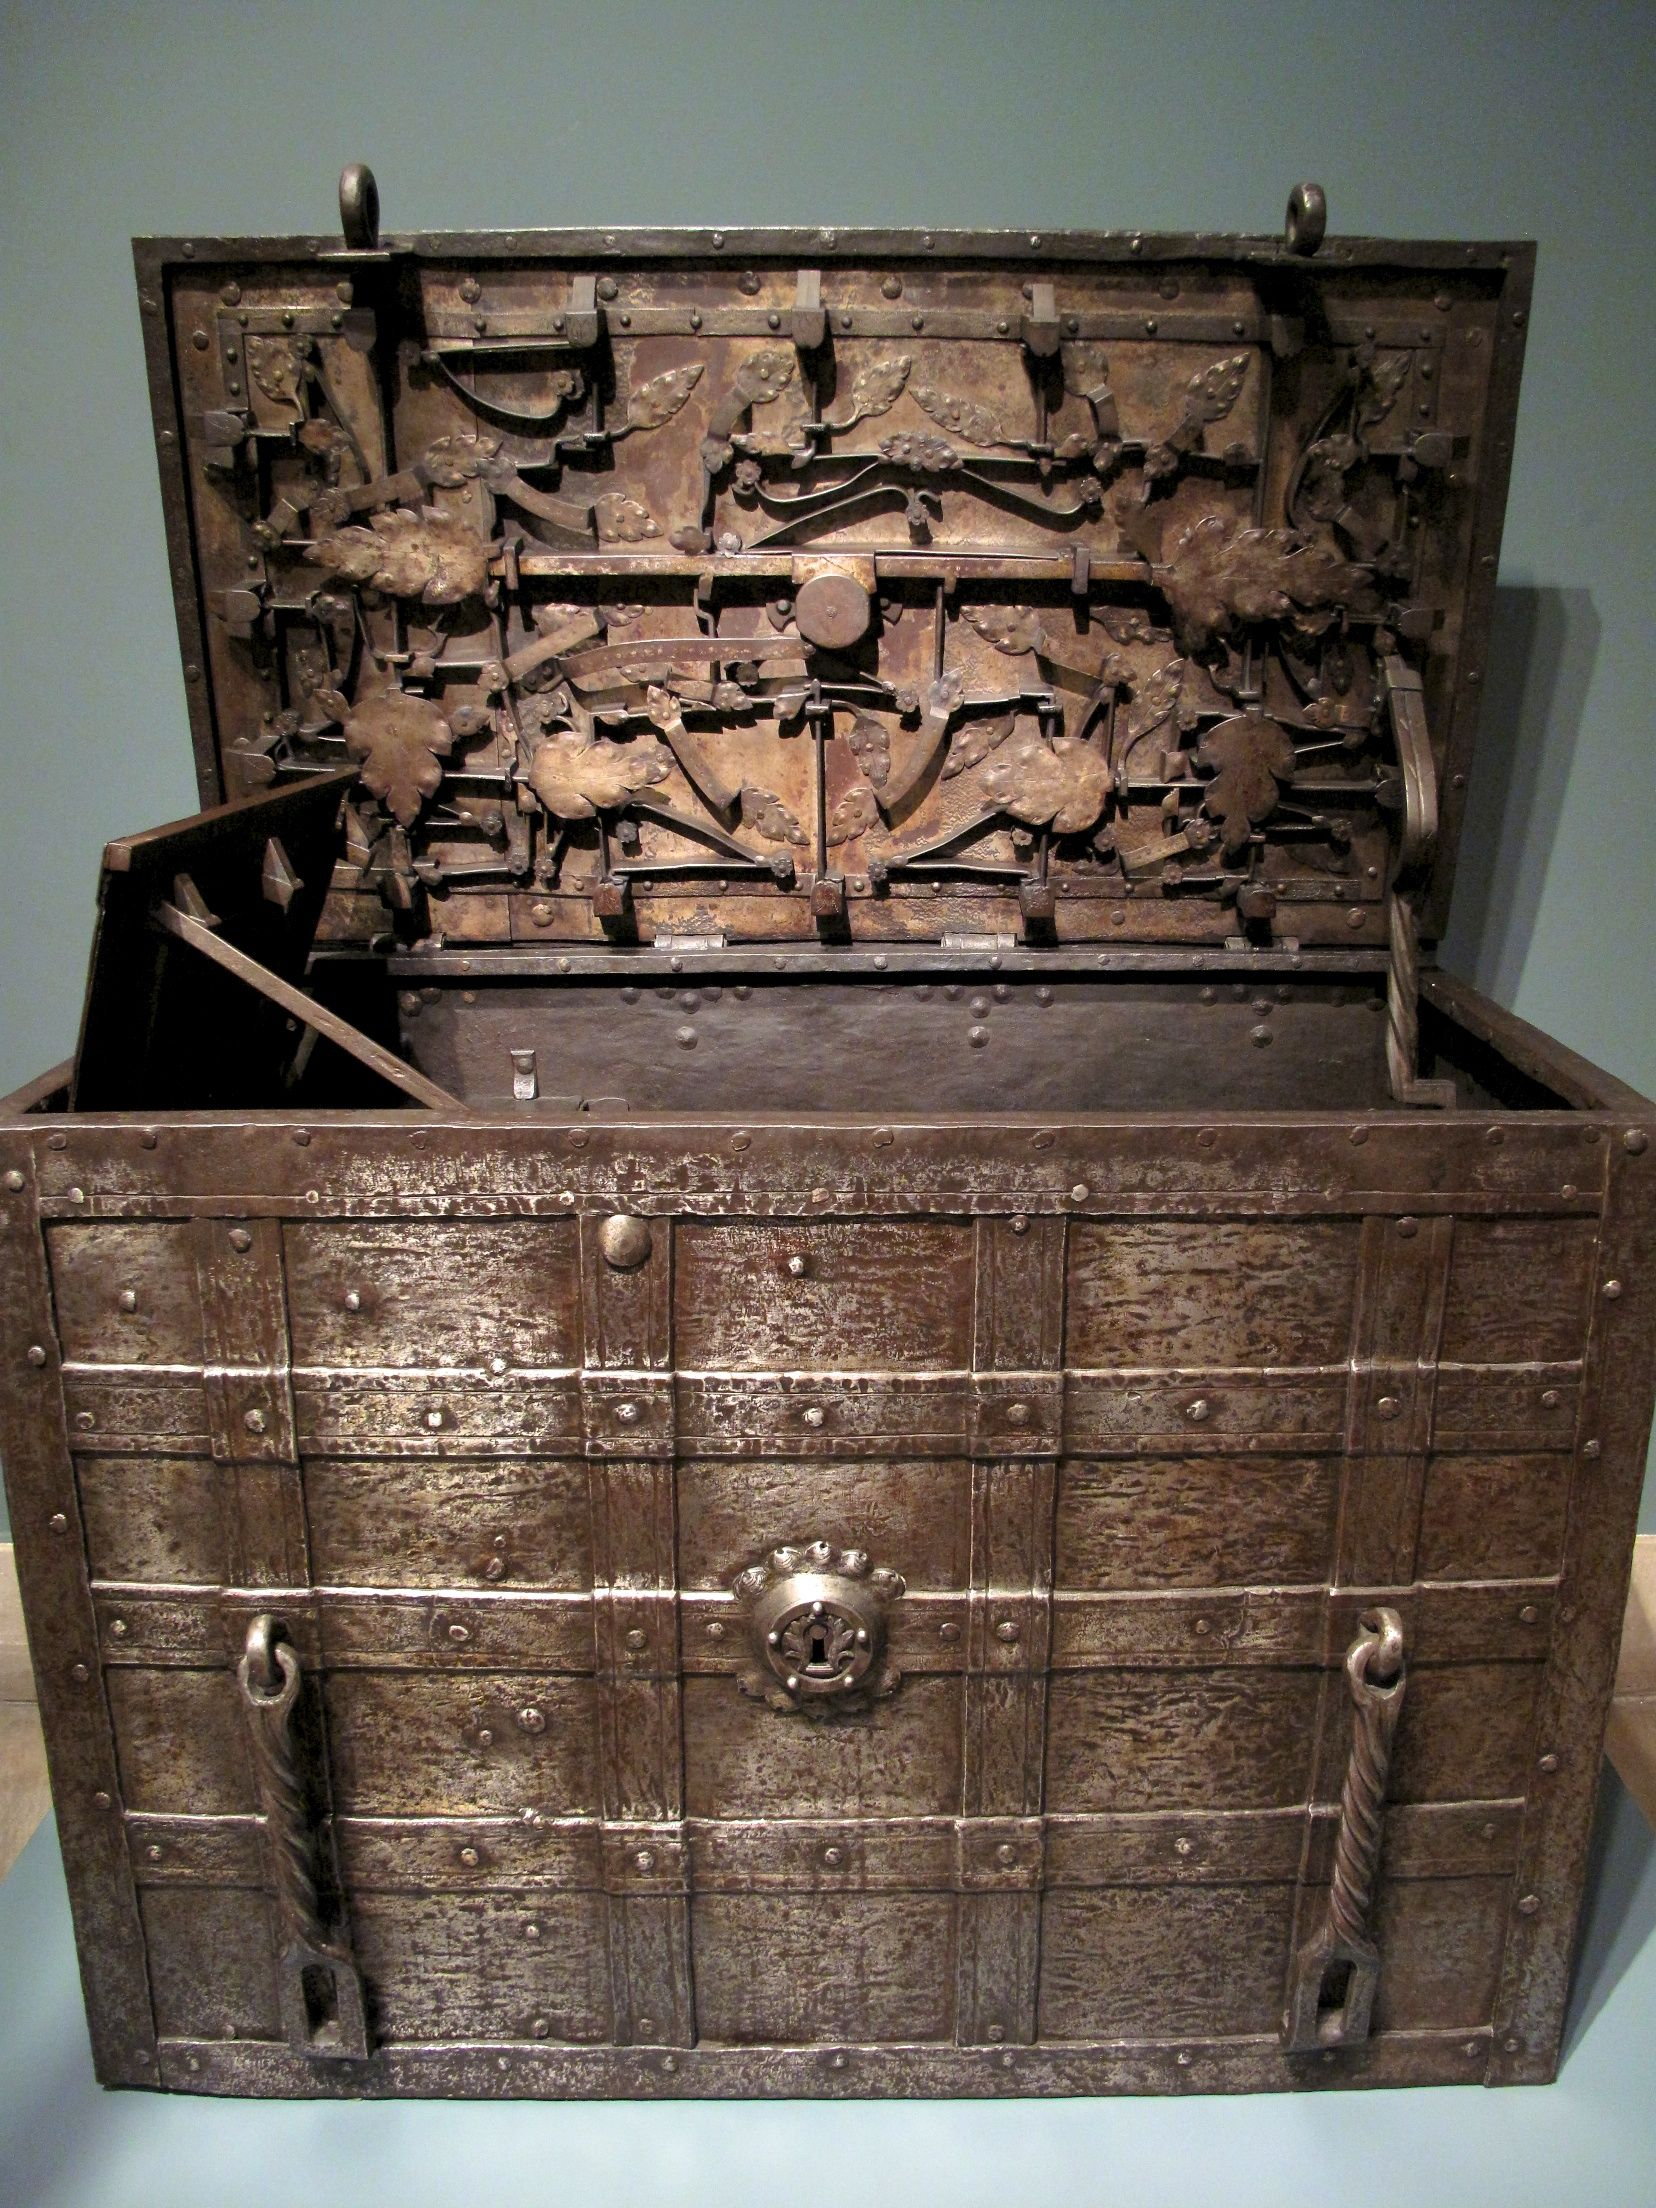 Medieval strongbox, seen at the Met in New York